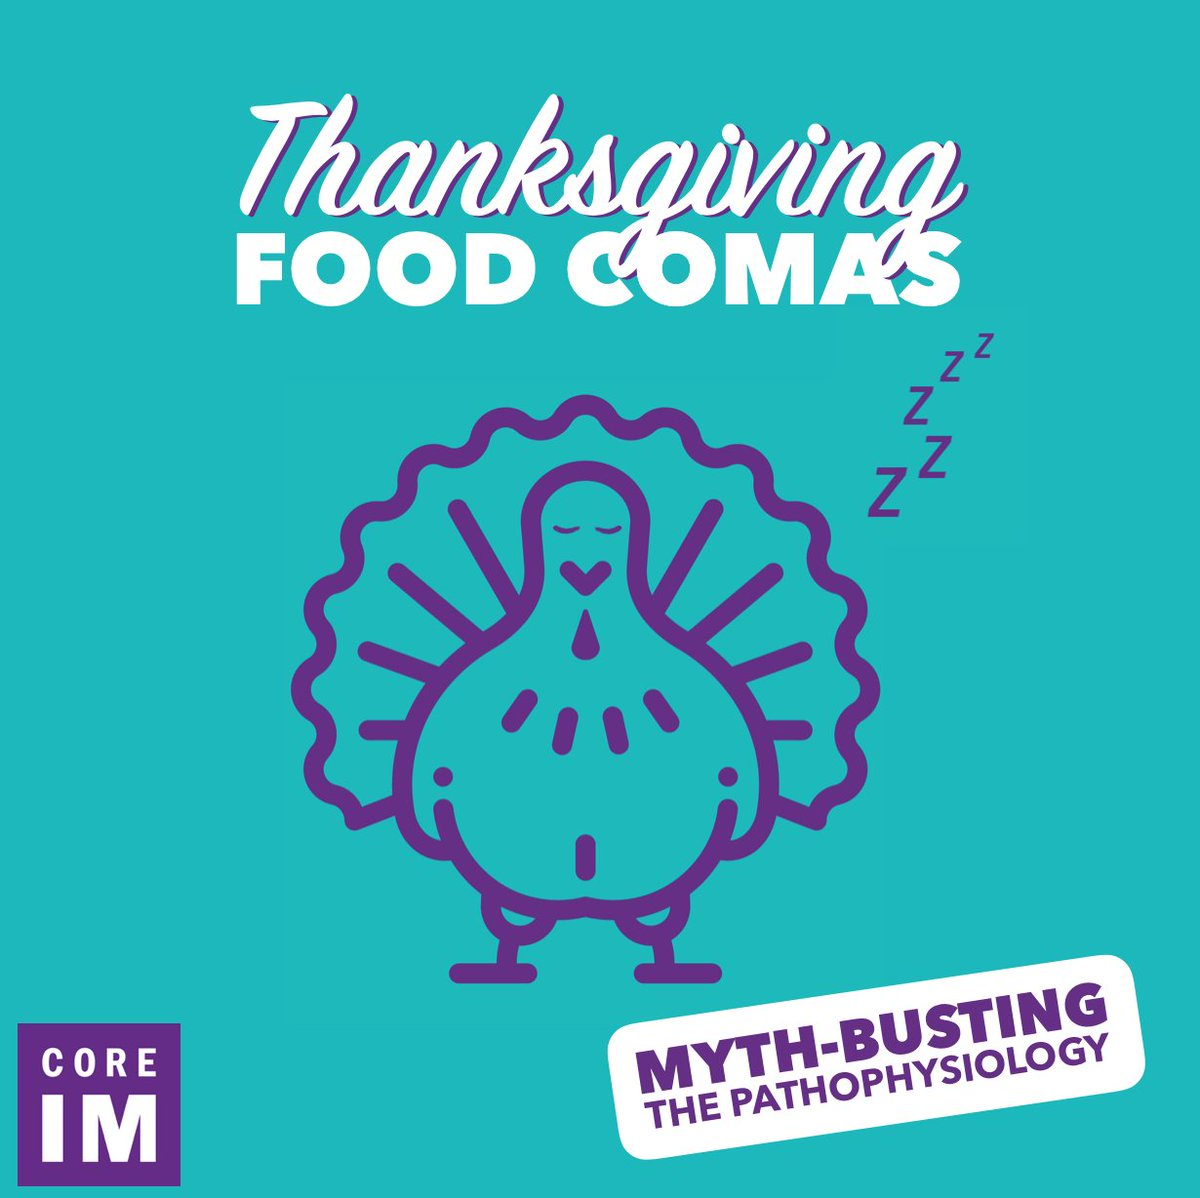 There are several hypotheses on what *actually* causes postprandial somnolence. So in the spirit of #Thanksgiving, let's take a more critical look at some of these while you salivate over the prospect of your afternoon #turkey. 1/5